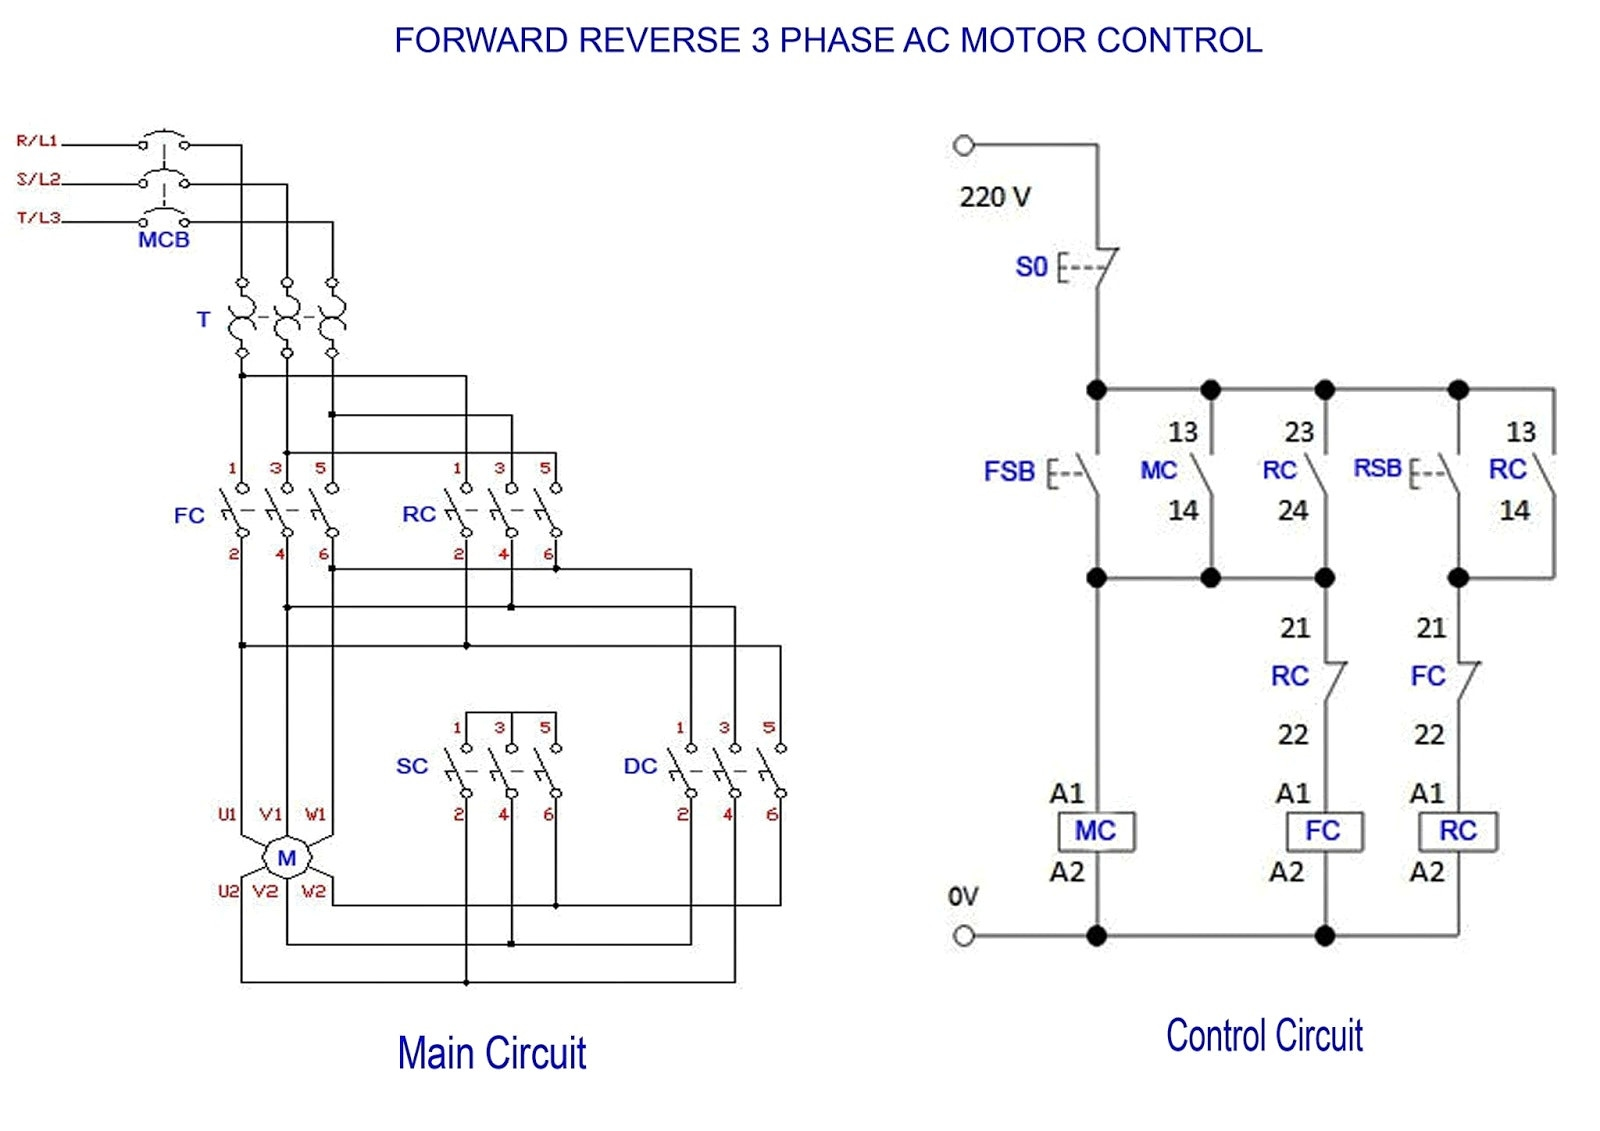 ac motor forward reverse wiring diagram